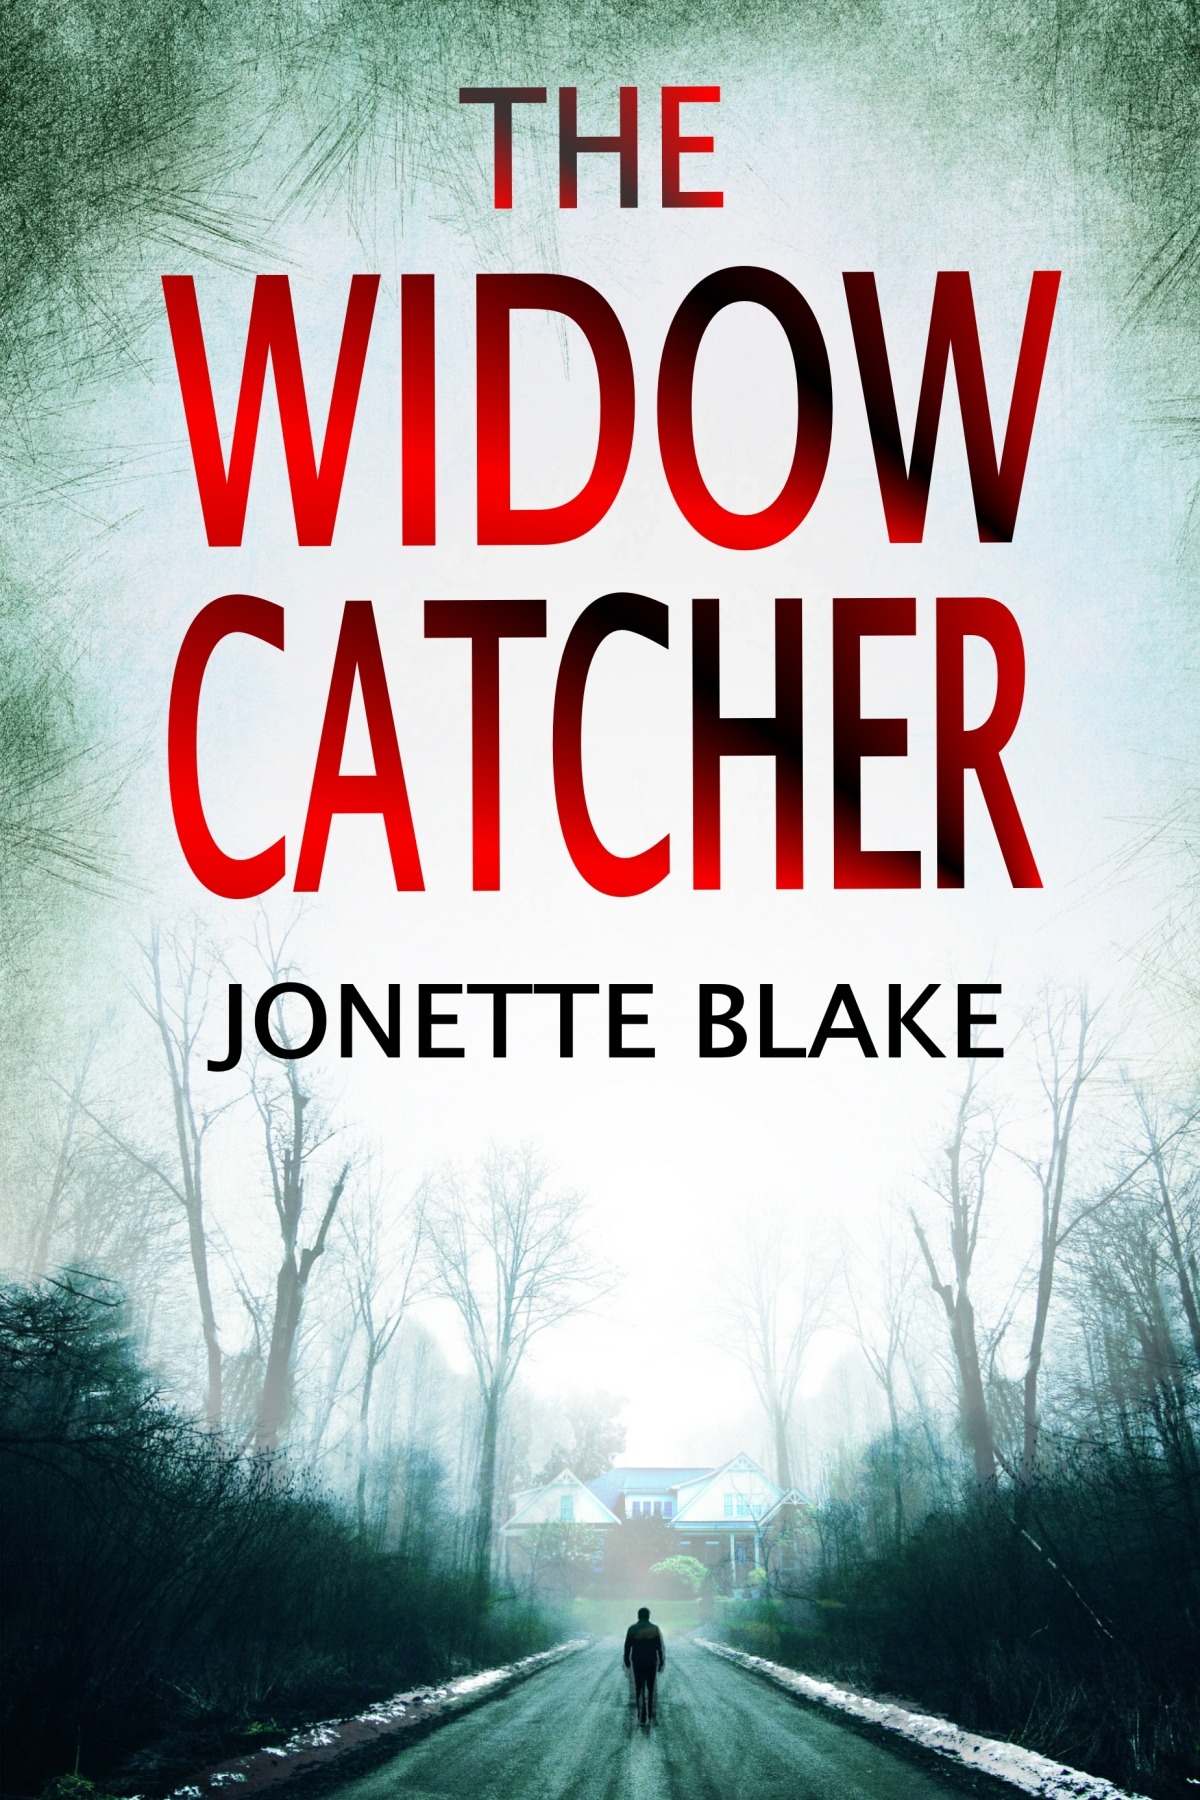 Guest Post: Jonette Blake – THE WIDOW CATCHER